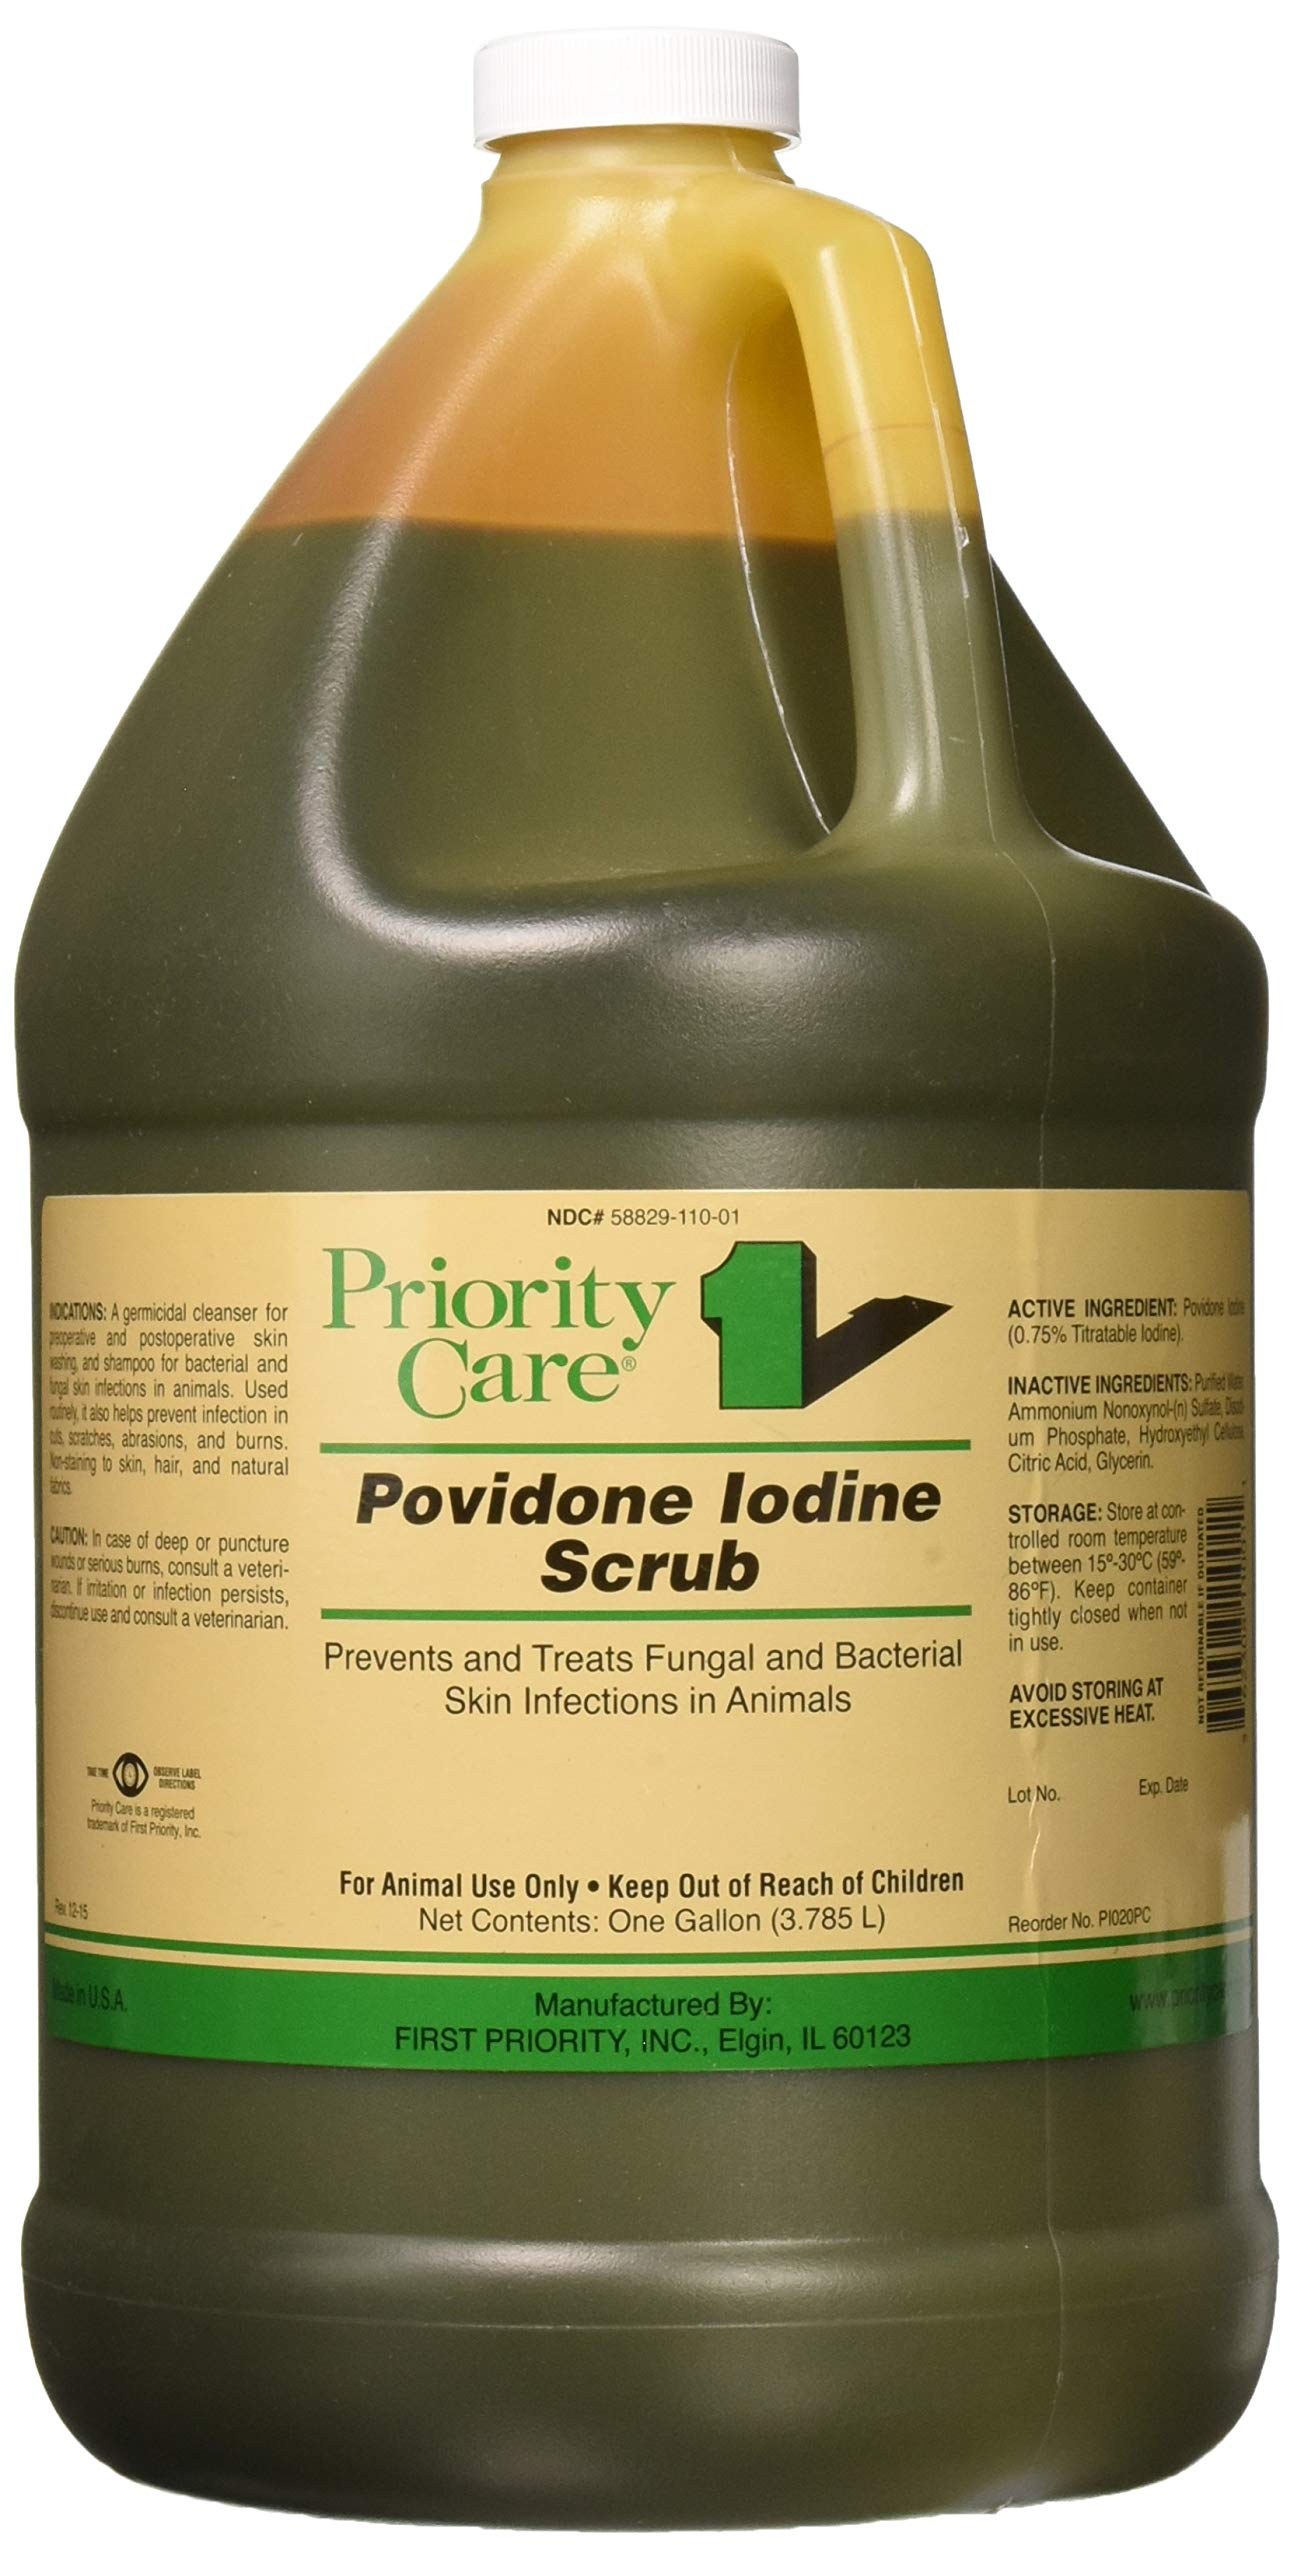 First Priority Povidone Iodine Surgical Scrub, 1 Gallon (3.785 Liters) by First Priority